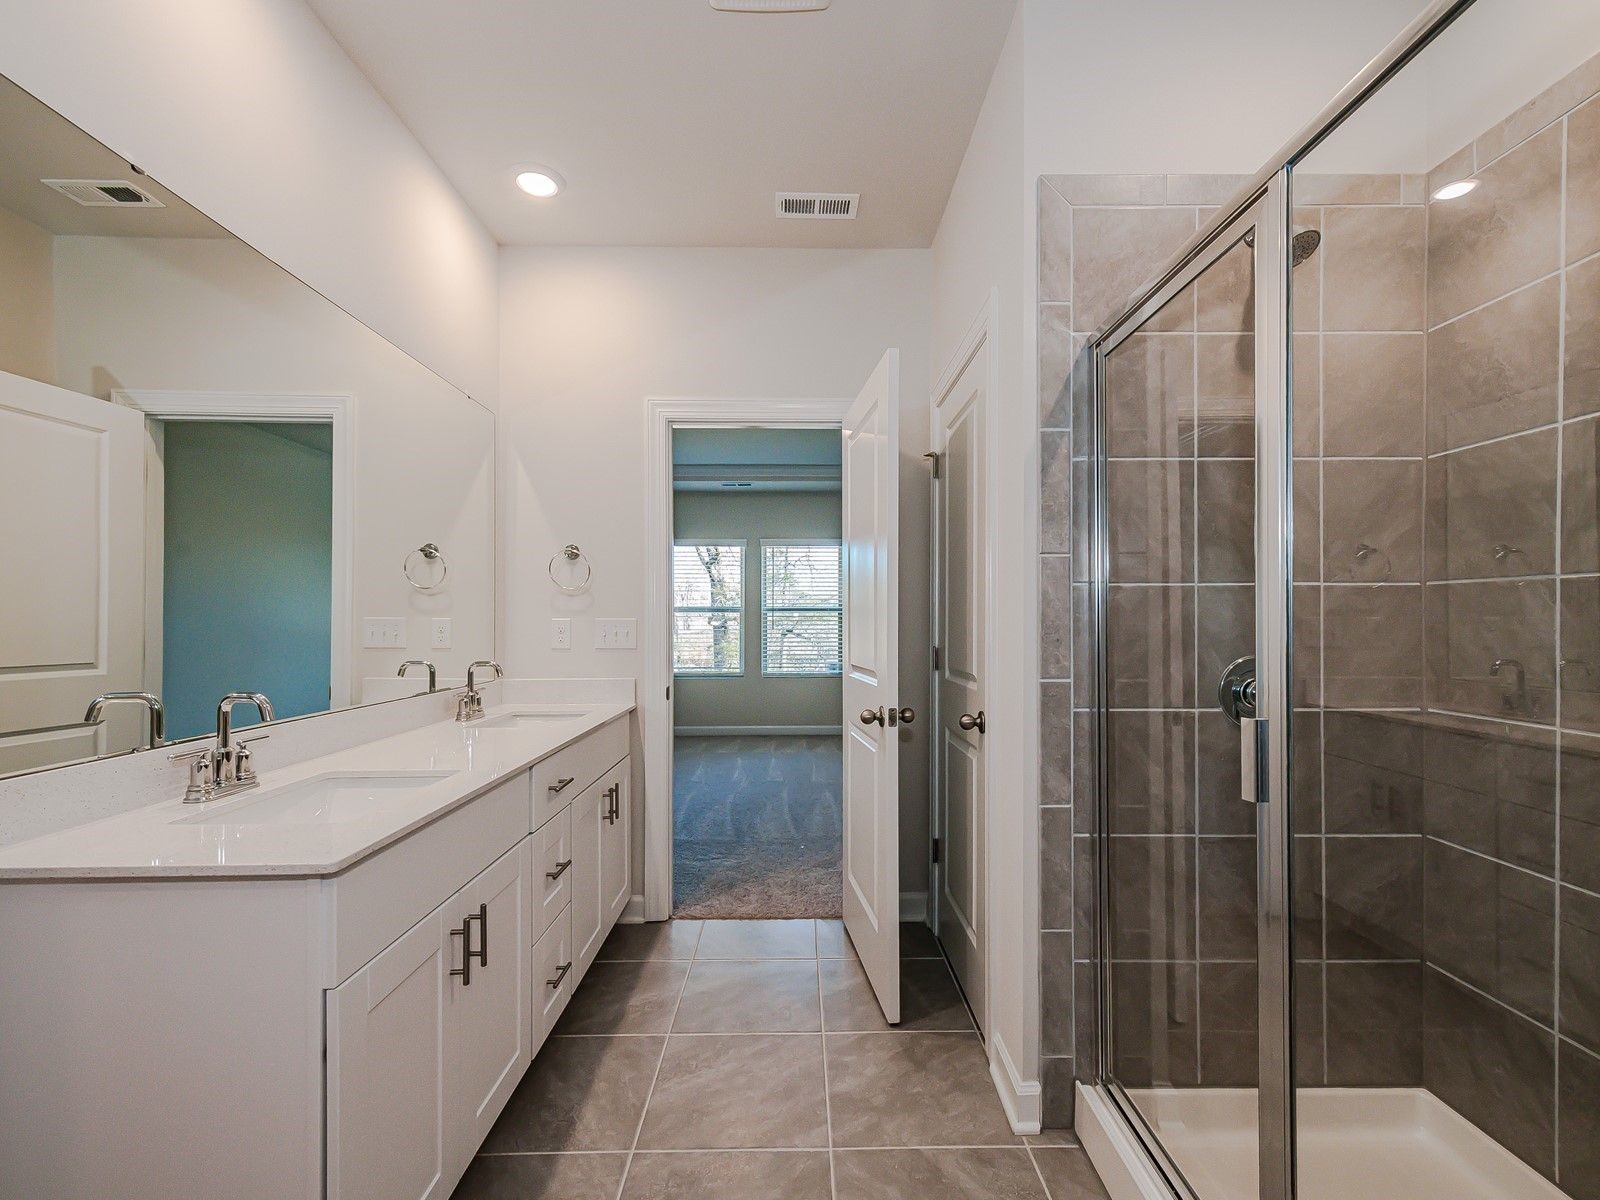 Bathroom featured in the Sherwood By Meritage Homes in Charlotte, NC